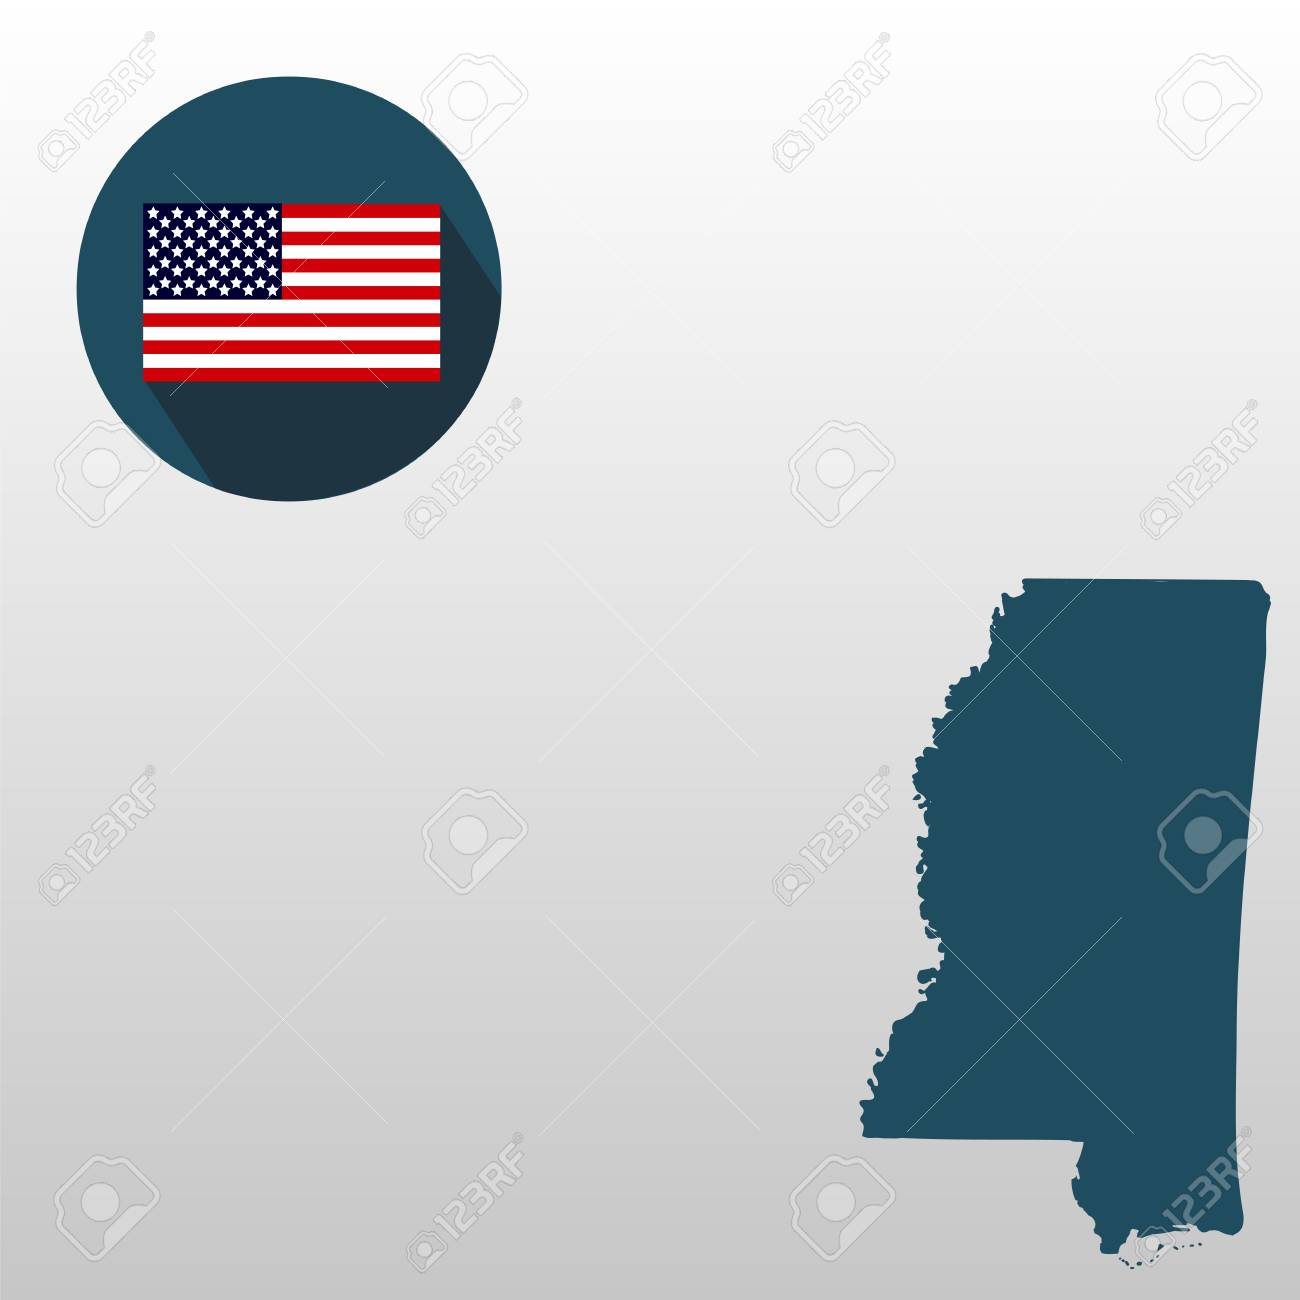 S In Mississippi Map on louisiana's map, maryland's map, kentucky's map, maine's map, oklahoma's map, mississippi regions map, ms road map, georgia's map, michigan's map, indiana's map, missouri's map, new mexico's map, mississippi county map, mississippi state map, new jersey's map,